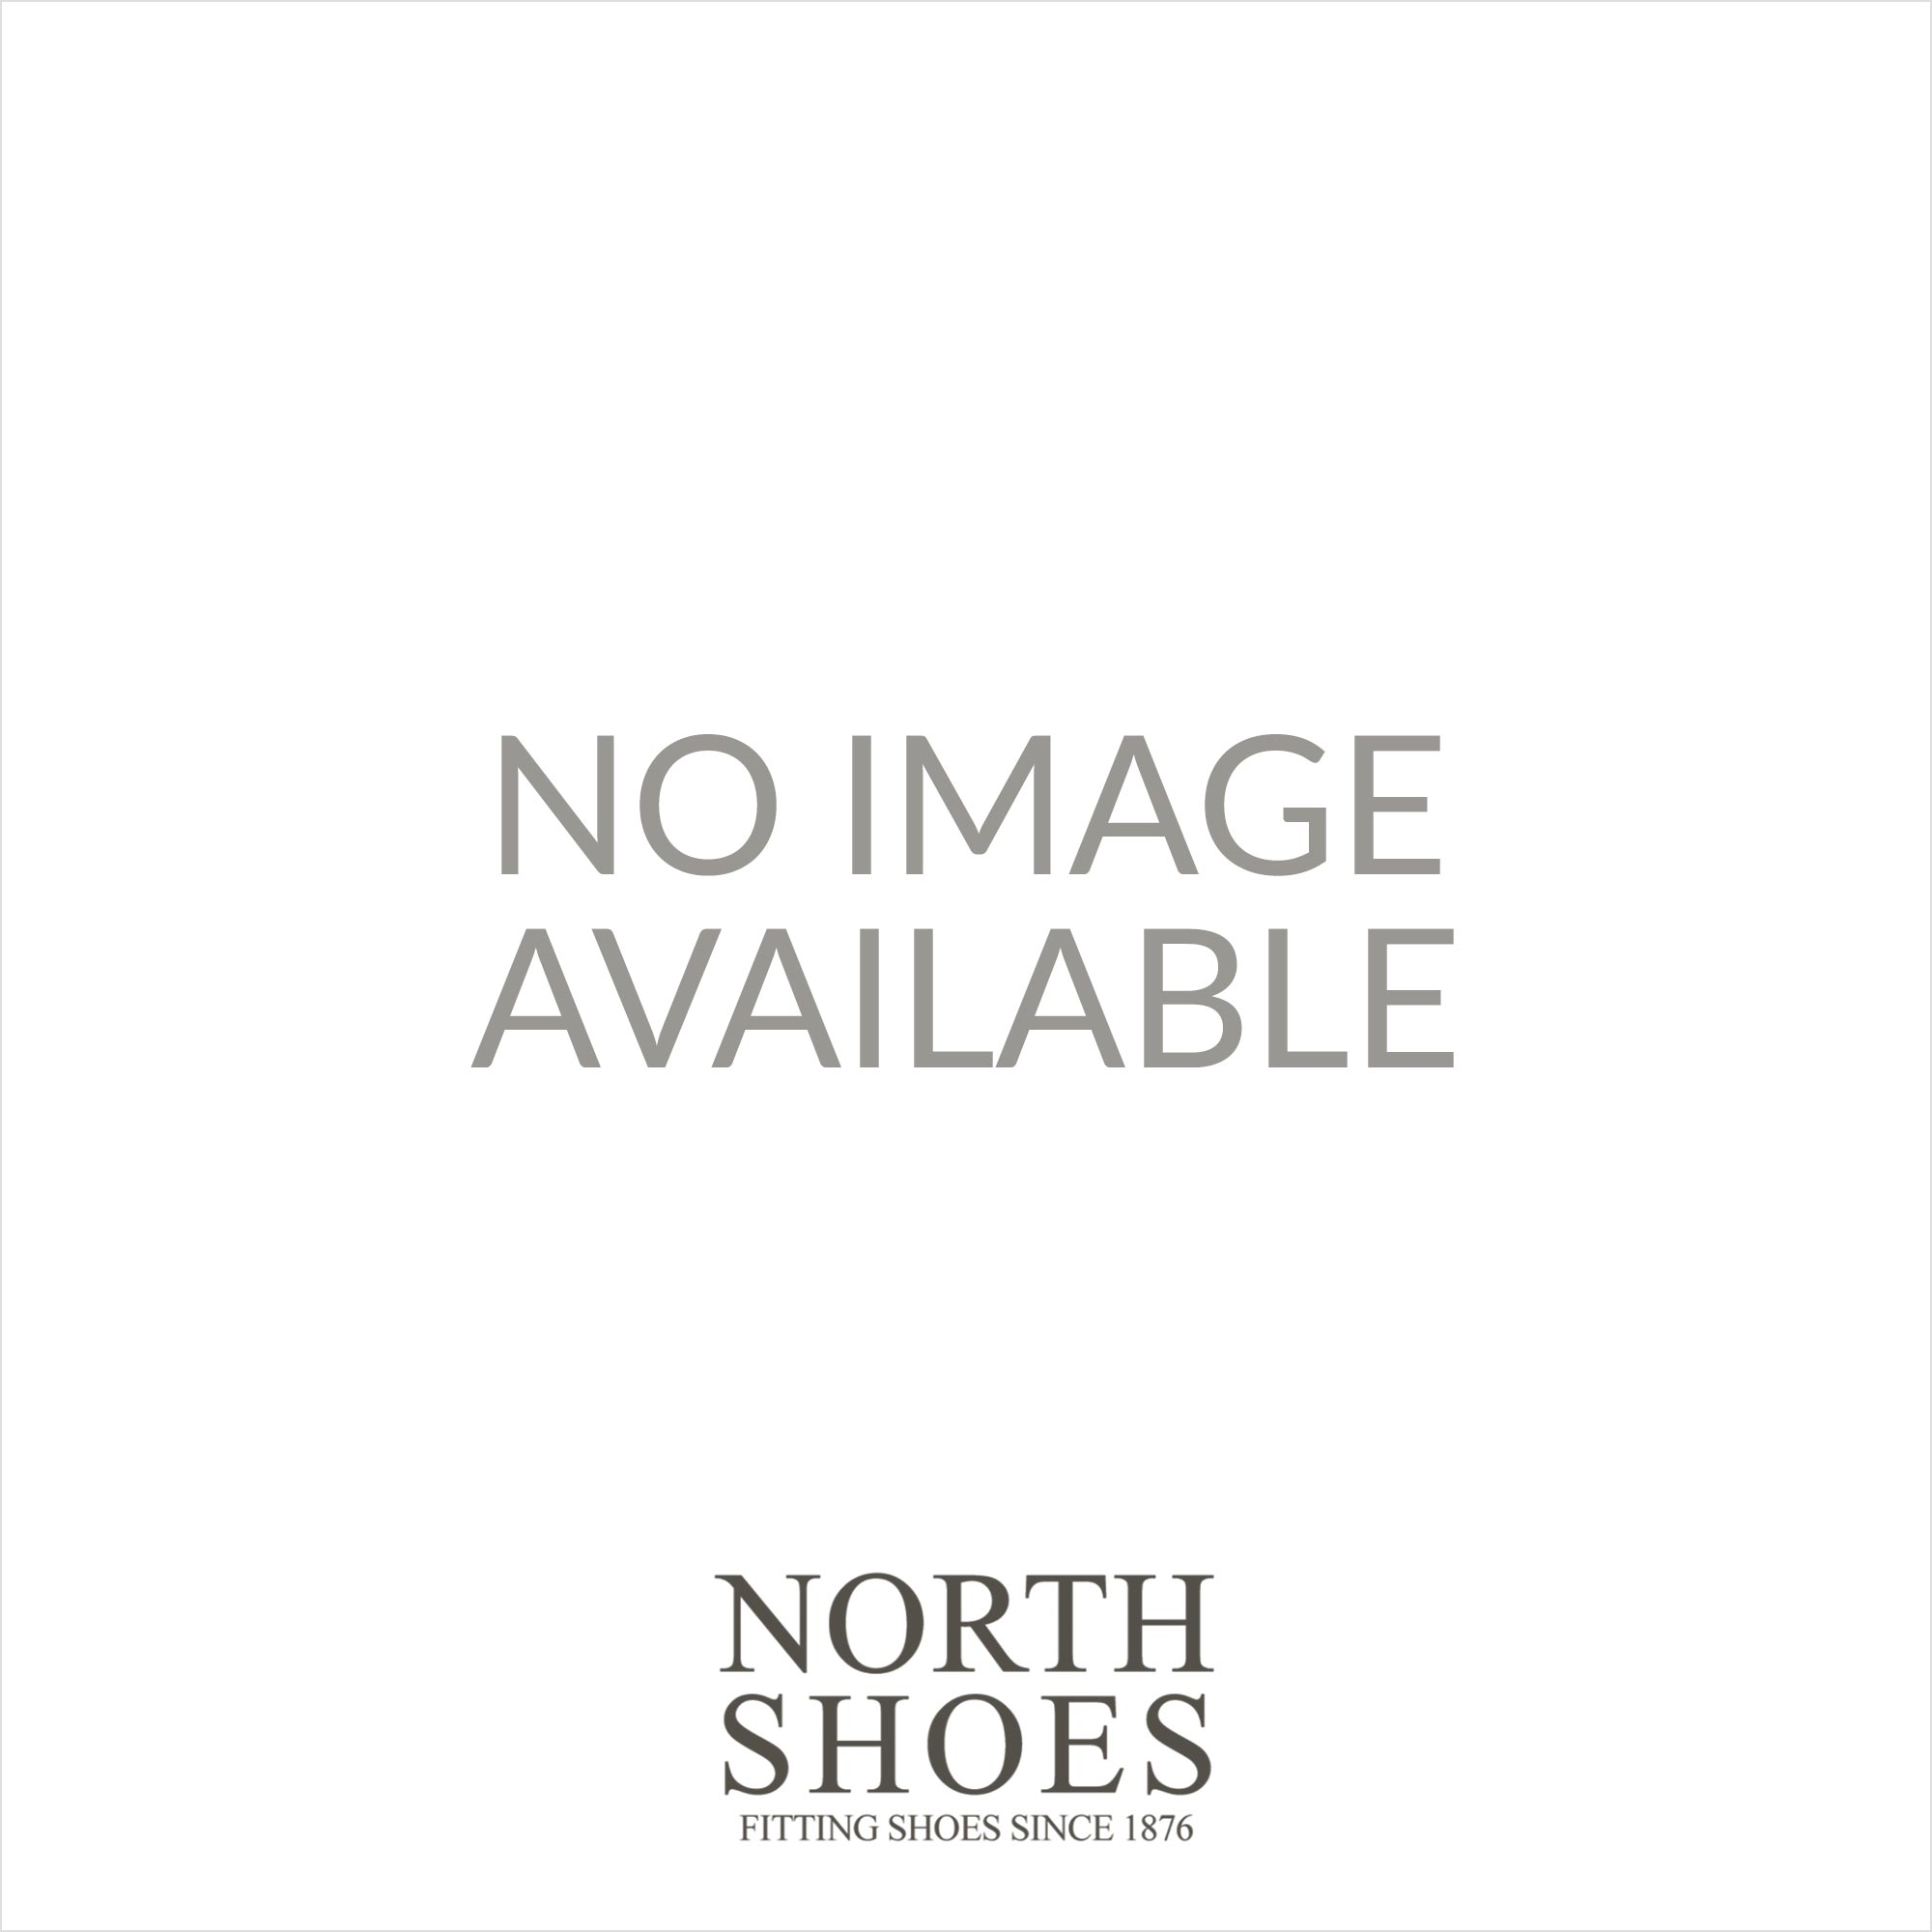 a2a324fa516 Mens Shoesme CR7W091A Taupe Leather Girls Ankle Boots | SALE | Buy ...